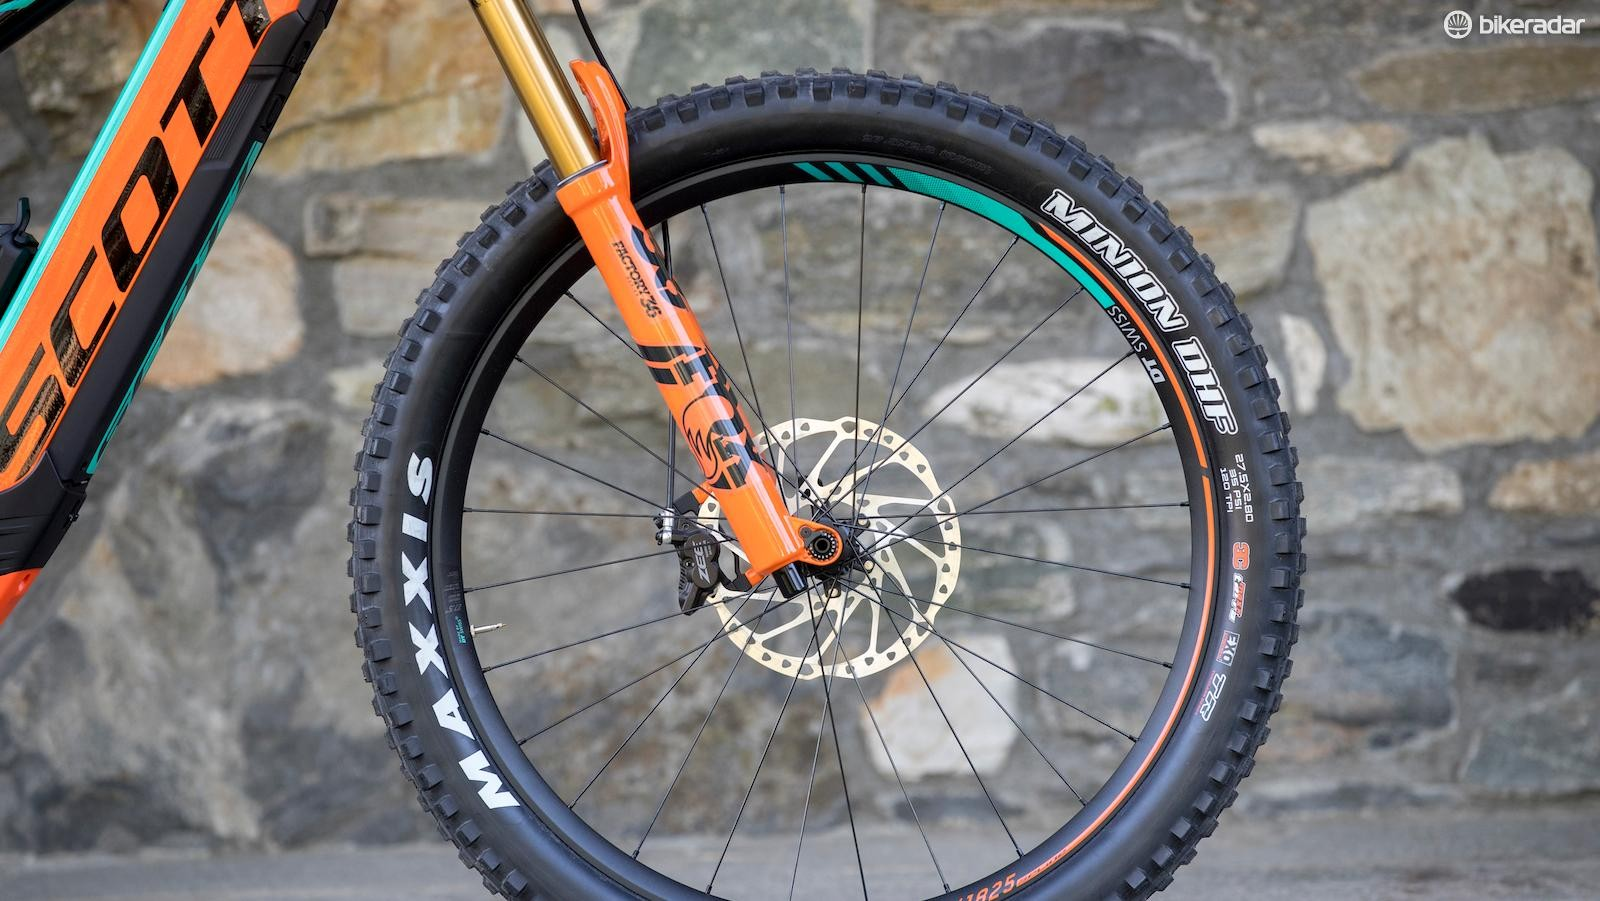 """E-bike specific Fox 36 forks, Shimano Zee brakes, 30mm-wide Aluminium DT Swiss wheels and 2.8"""" Maxxis Minion tyres are all solid spec choices"""